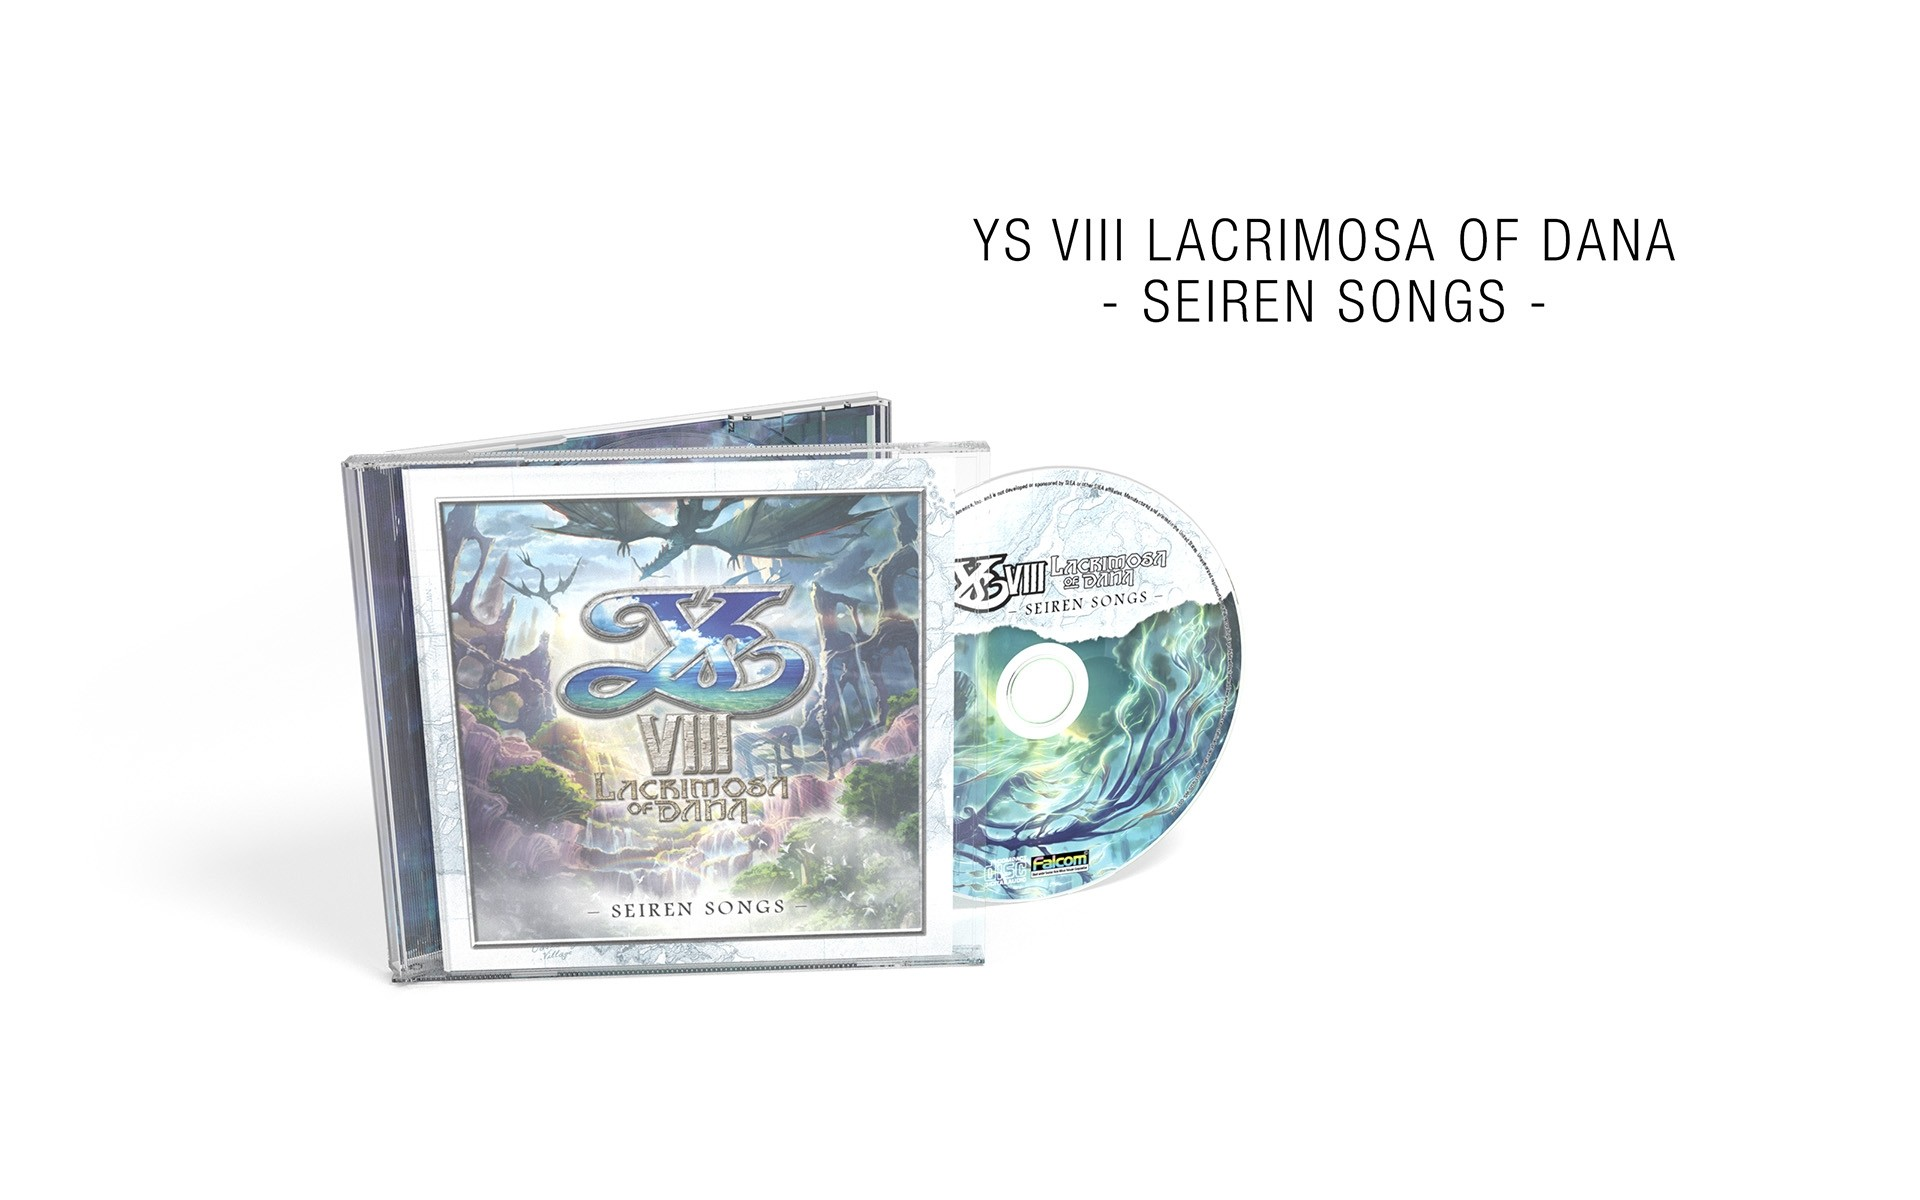 YsVIII-LacrimosaofDana Switch Visuel 004